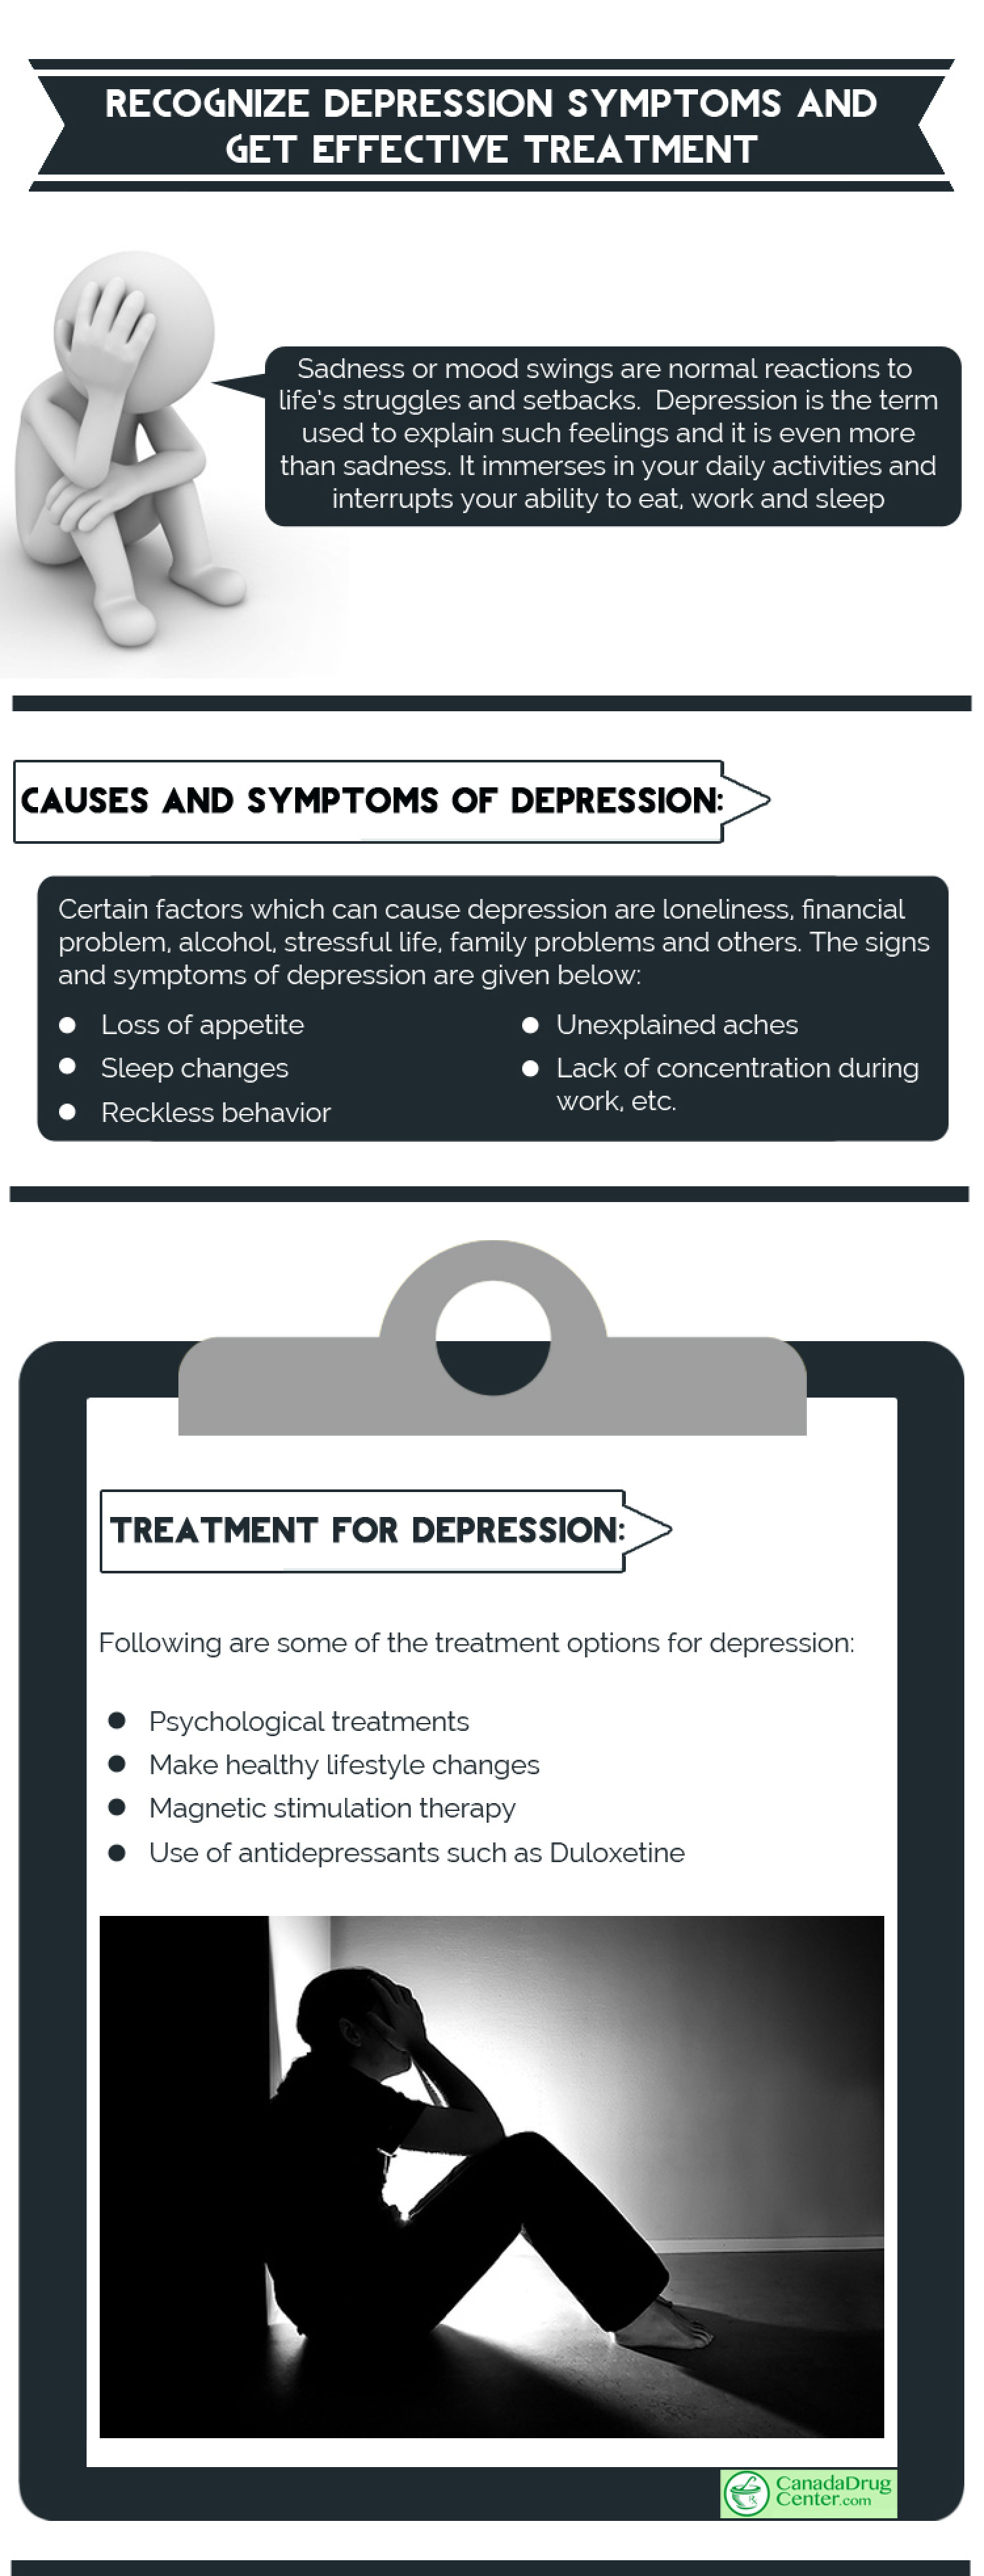 Recognize Depression Symptoms and get Effective Treatment Infographic